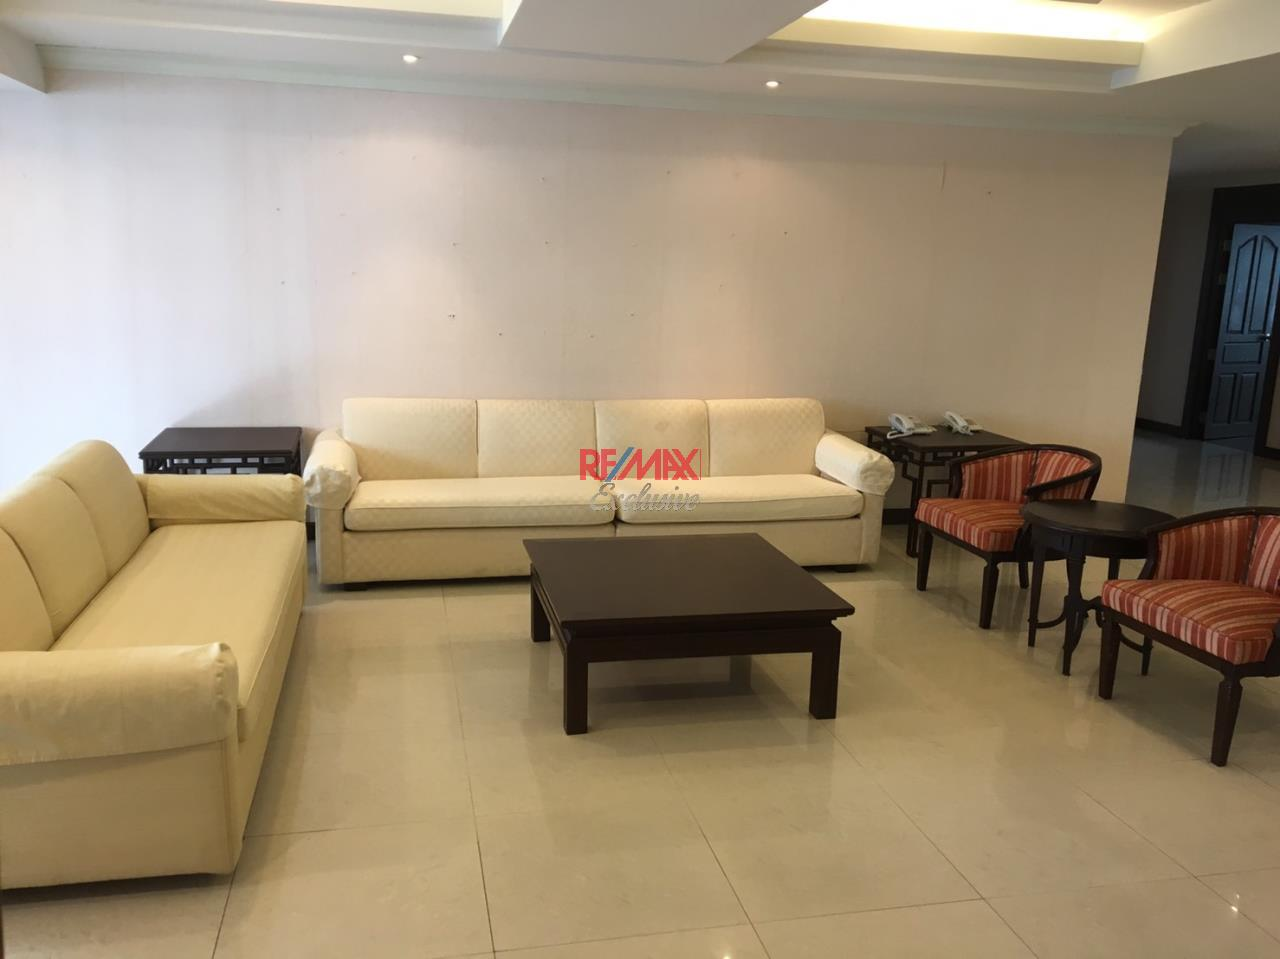 RE/MAX Exclusive Agency's Hawaii Tower, 3 Bedroom, 330 Sqm., Fully-Furnished, Special Price for RENT !!! 1